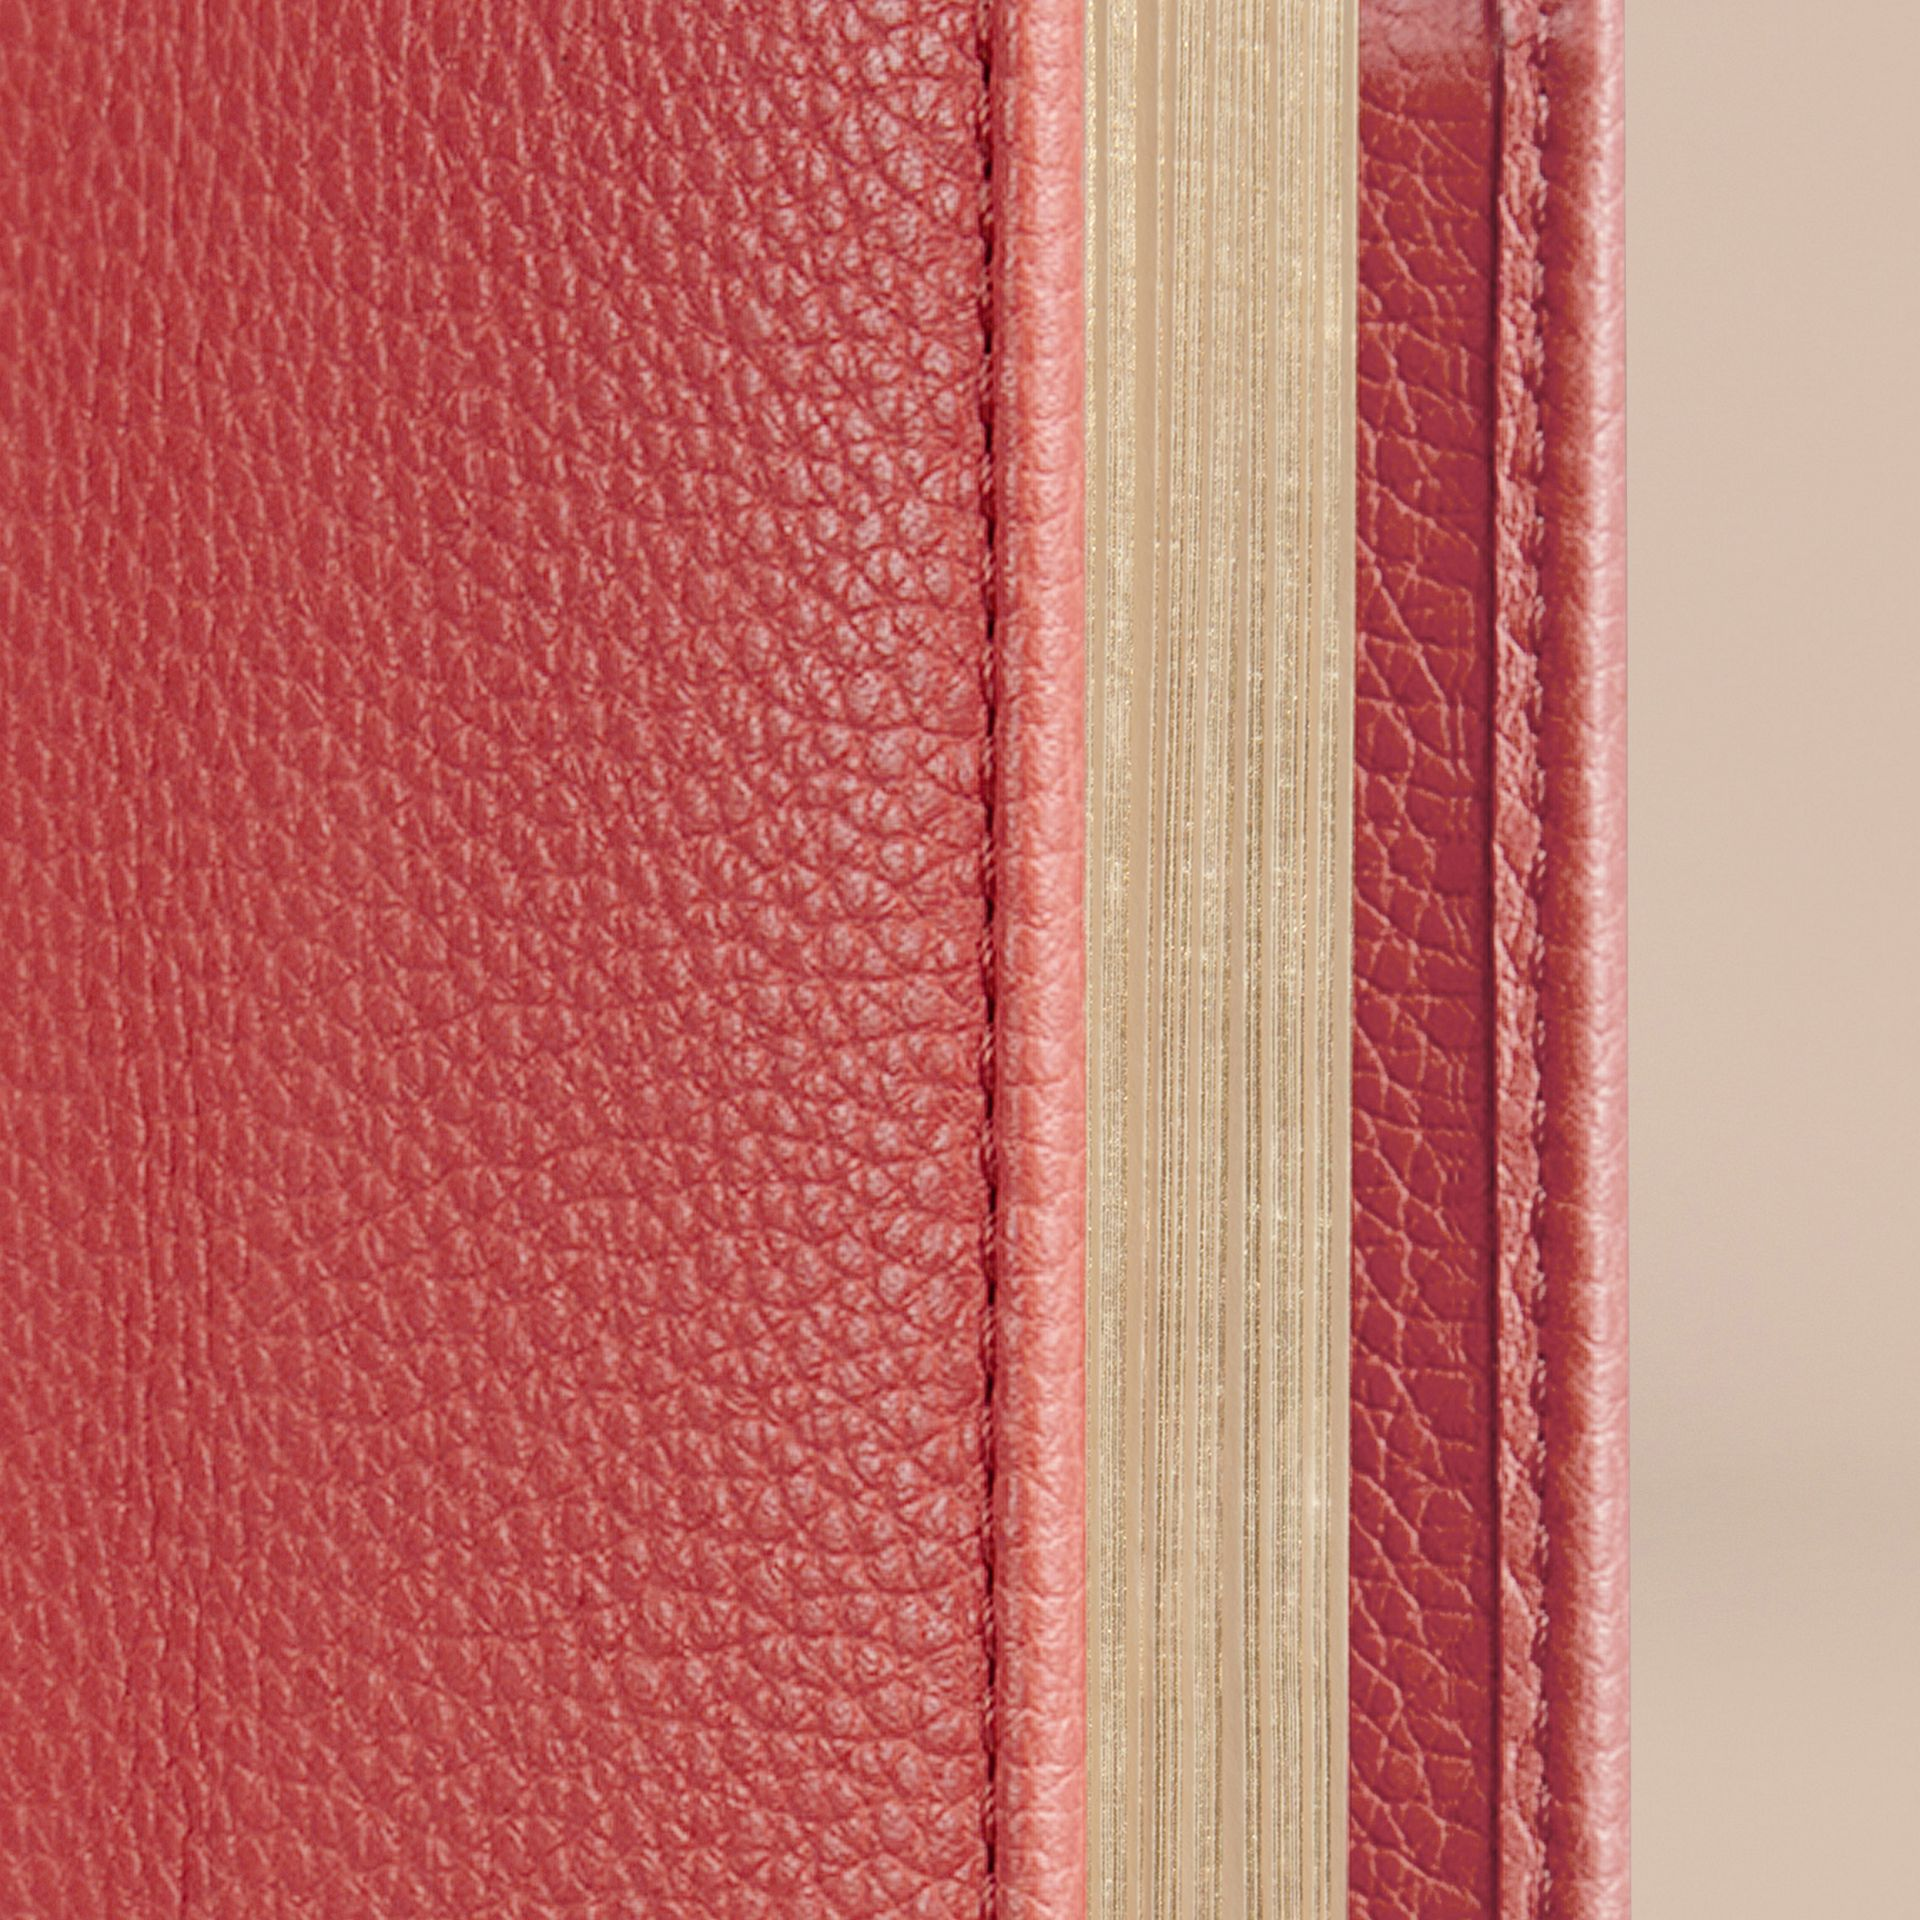 Grainy Leather A5 Notebook Orange Red - gallery image 2